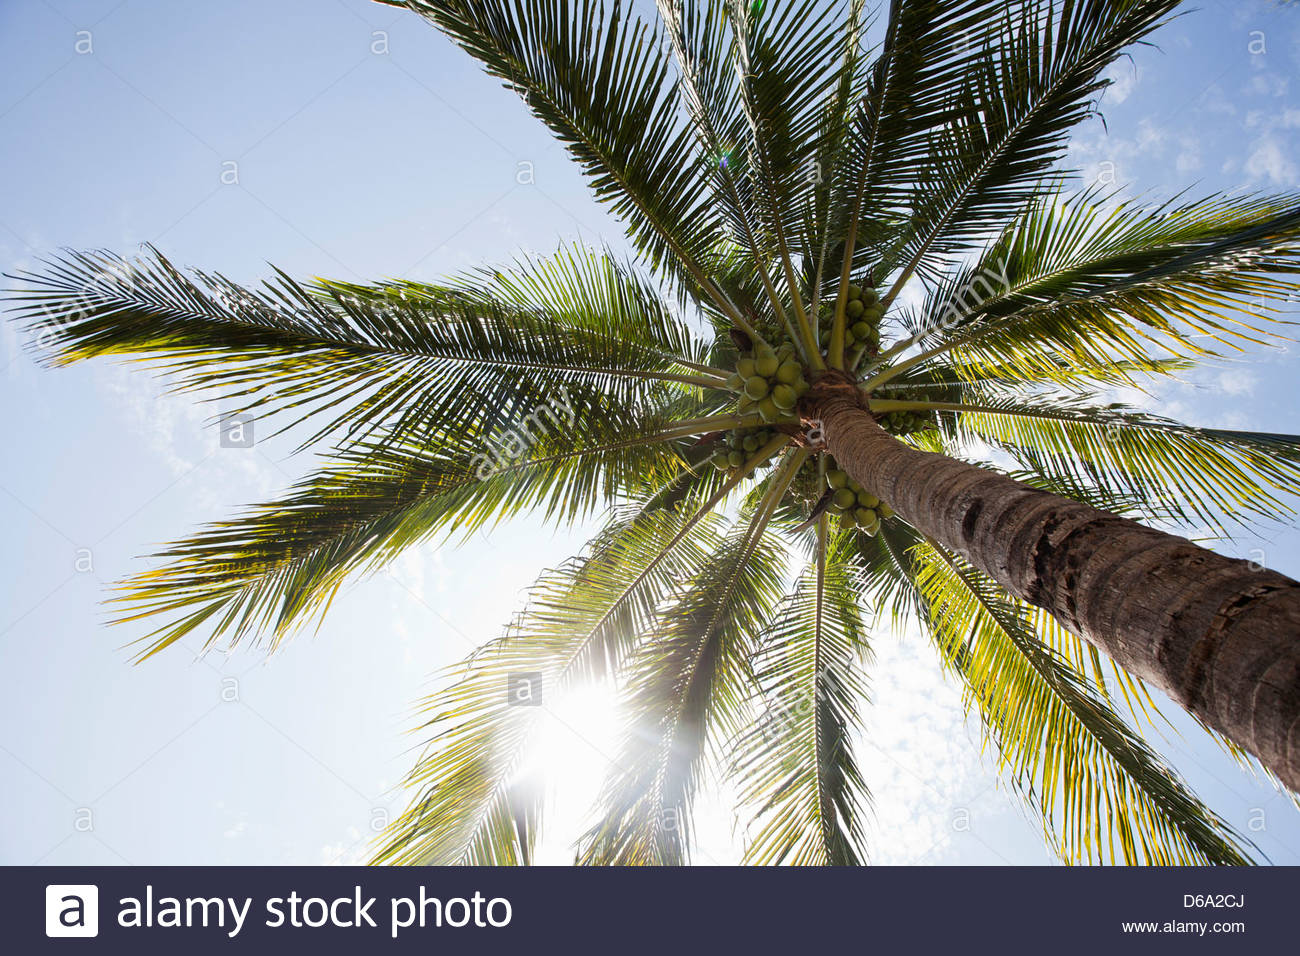 Low angle view of palm tree - Stock Image